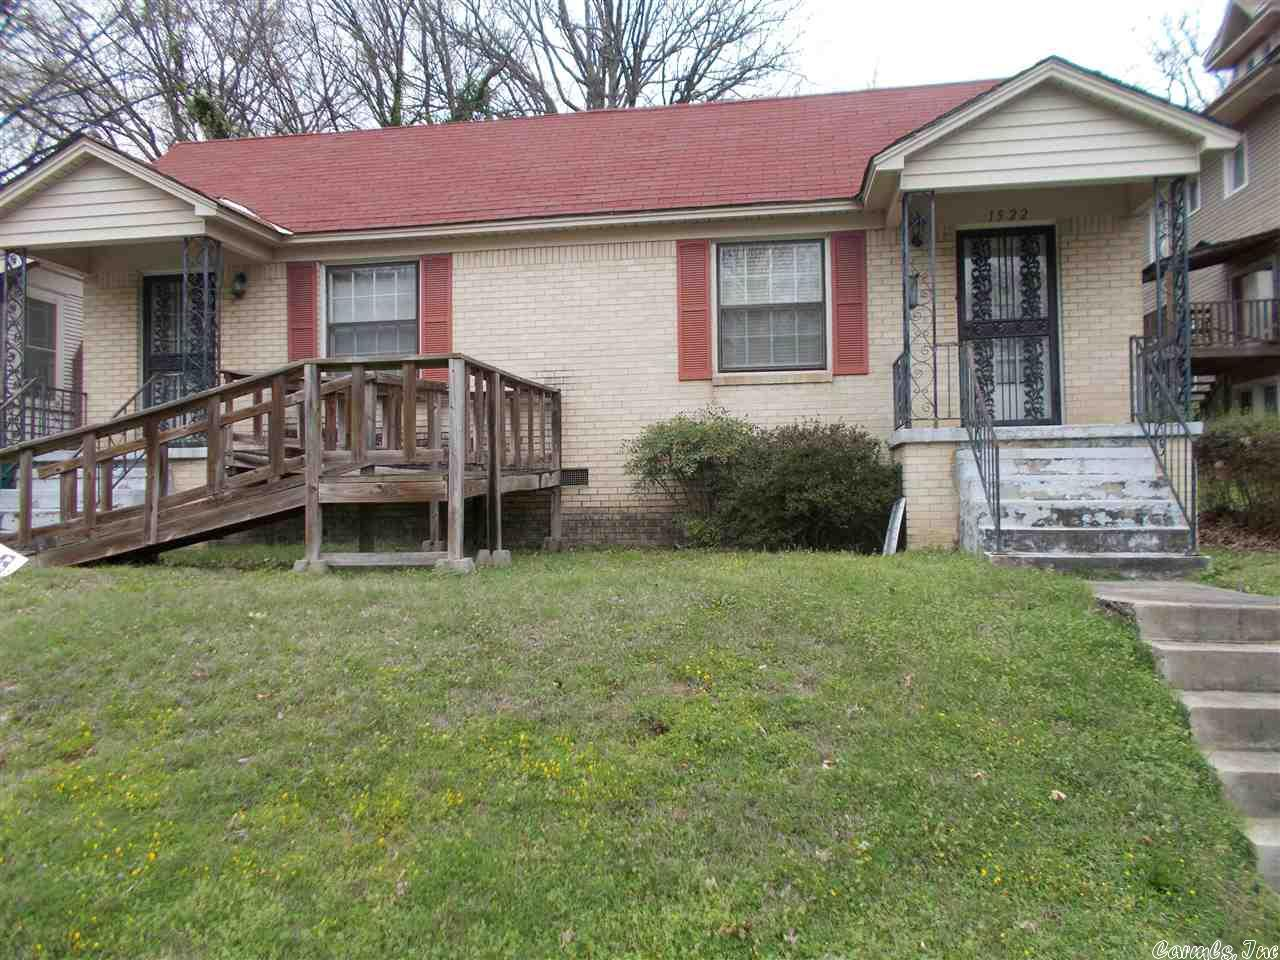 1522 W. 21st Street, Little Rock, AR 72203